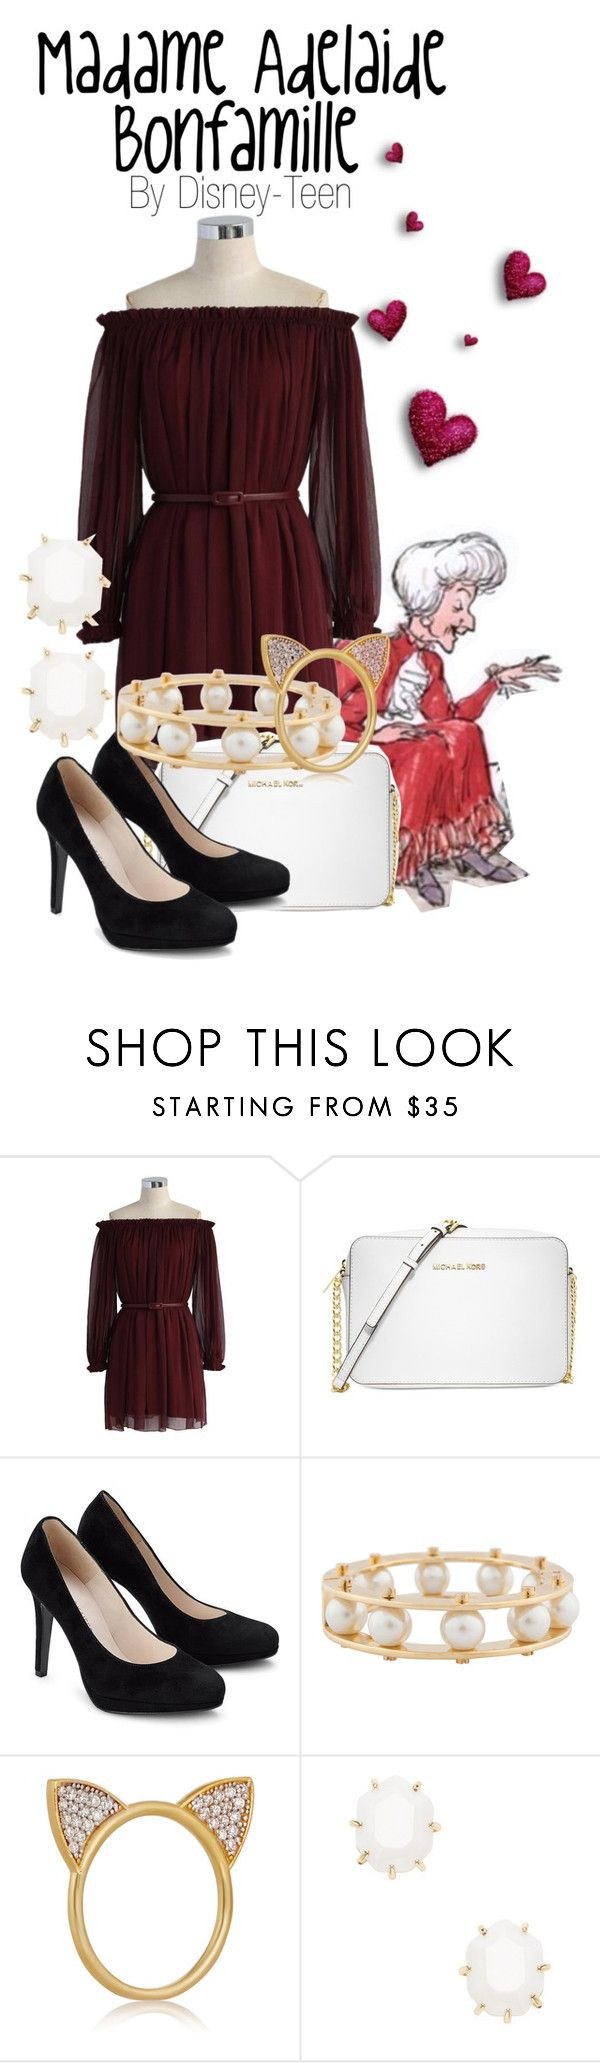 """Madame Adelaide Bonfamille"" by disney-teen ❤ liked on Polyvore featuring Chicwish, Michael Kors, Lele Sadoughi, Aamaya by Priyanka, Kendra Scott, disney, disneybound, disneyfashion and thearistocats"